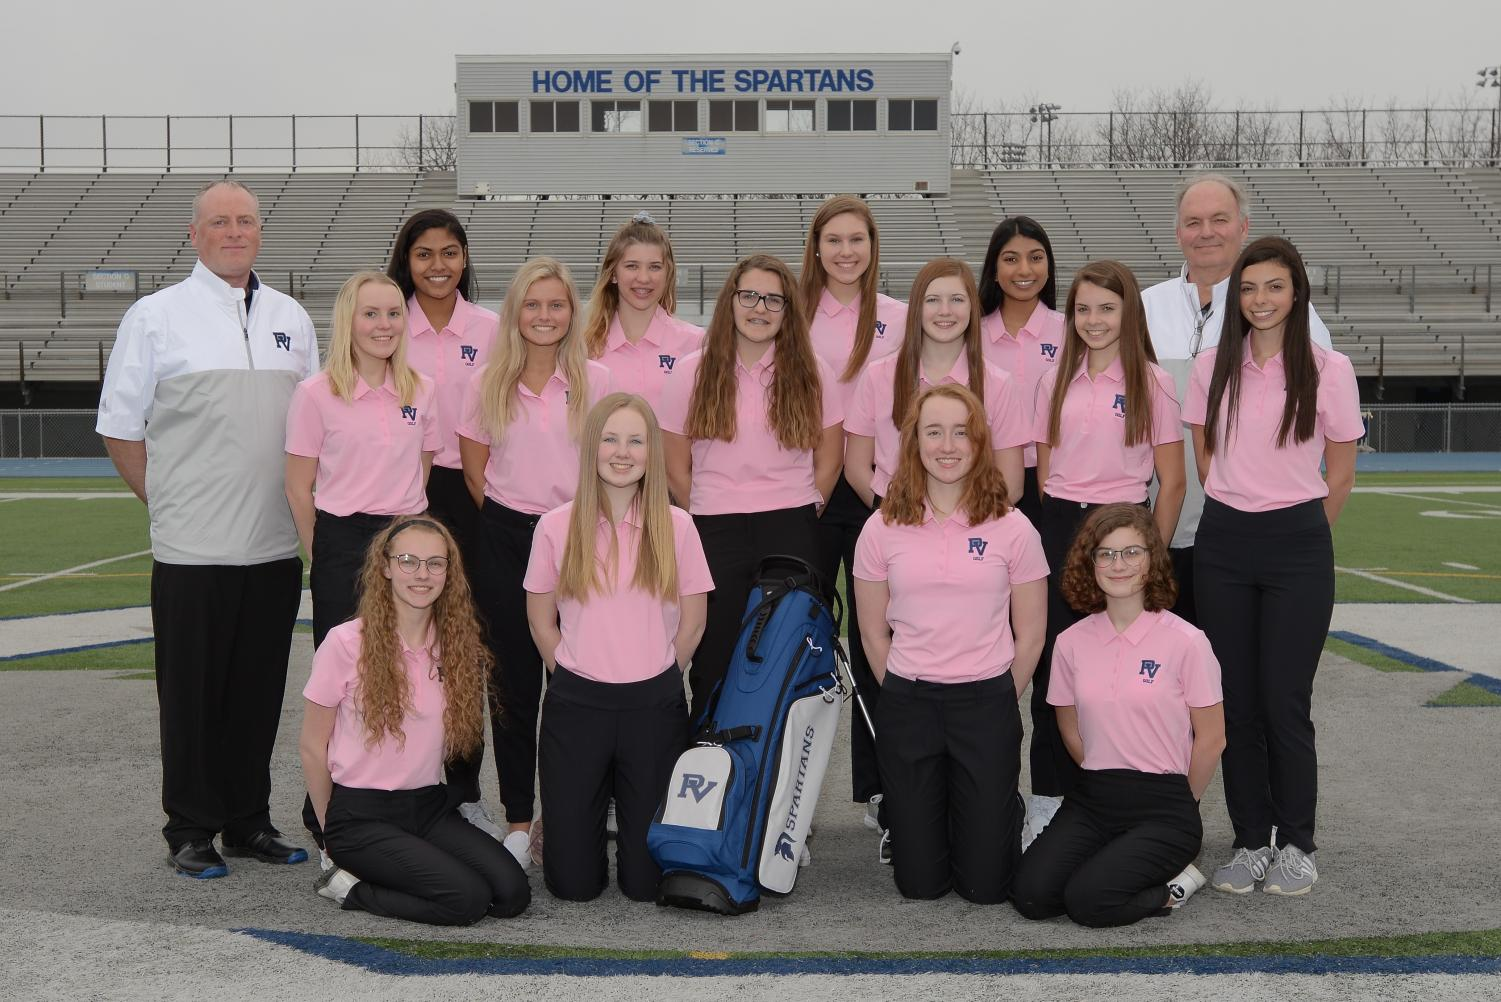 Although small in numbers, the mighty 2018-2019 PV Girls' Golf team smiles for a pre-season photo. The underclassmen dominated team is coached by Mike Nedelcoff and Sean Kingery.